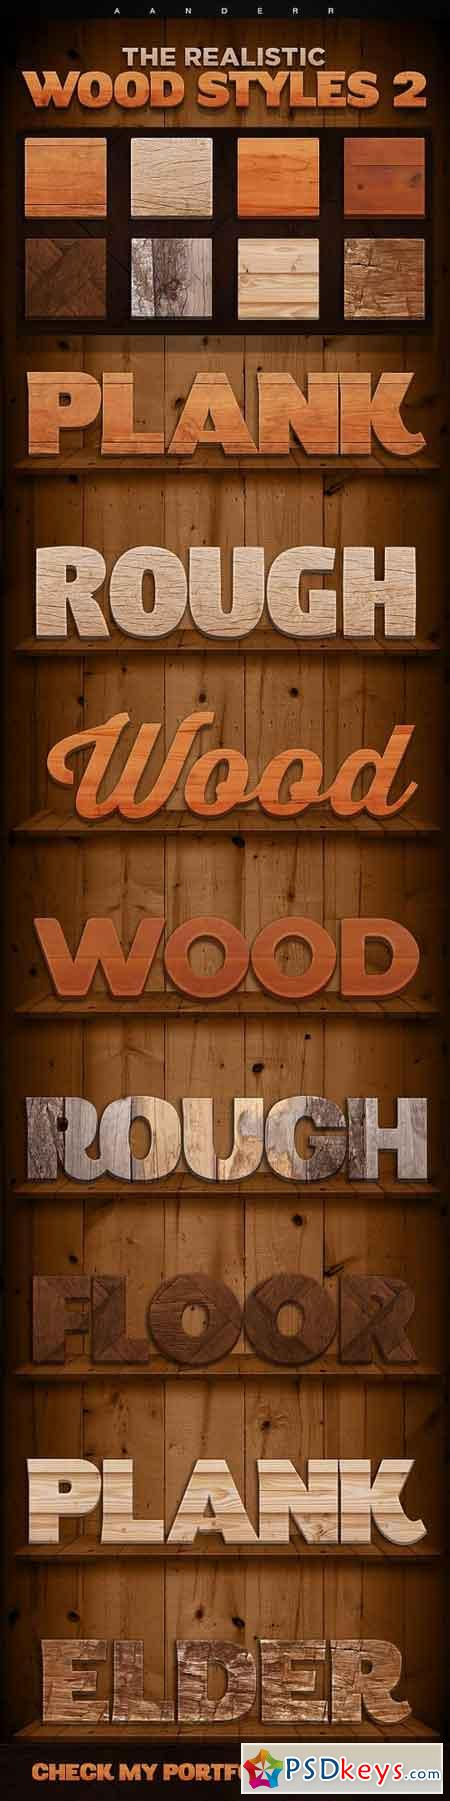 The Realistic Wood Styles 2 18006000